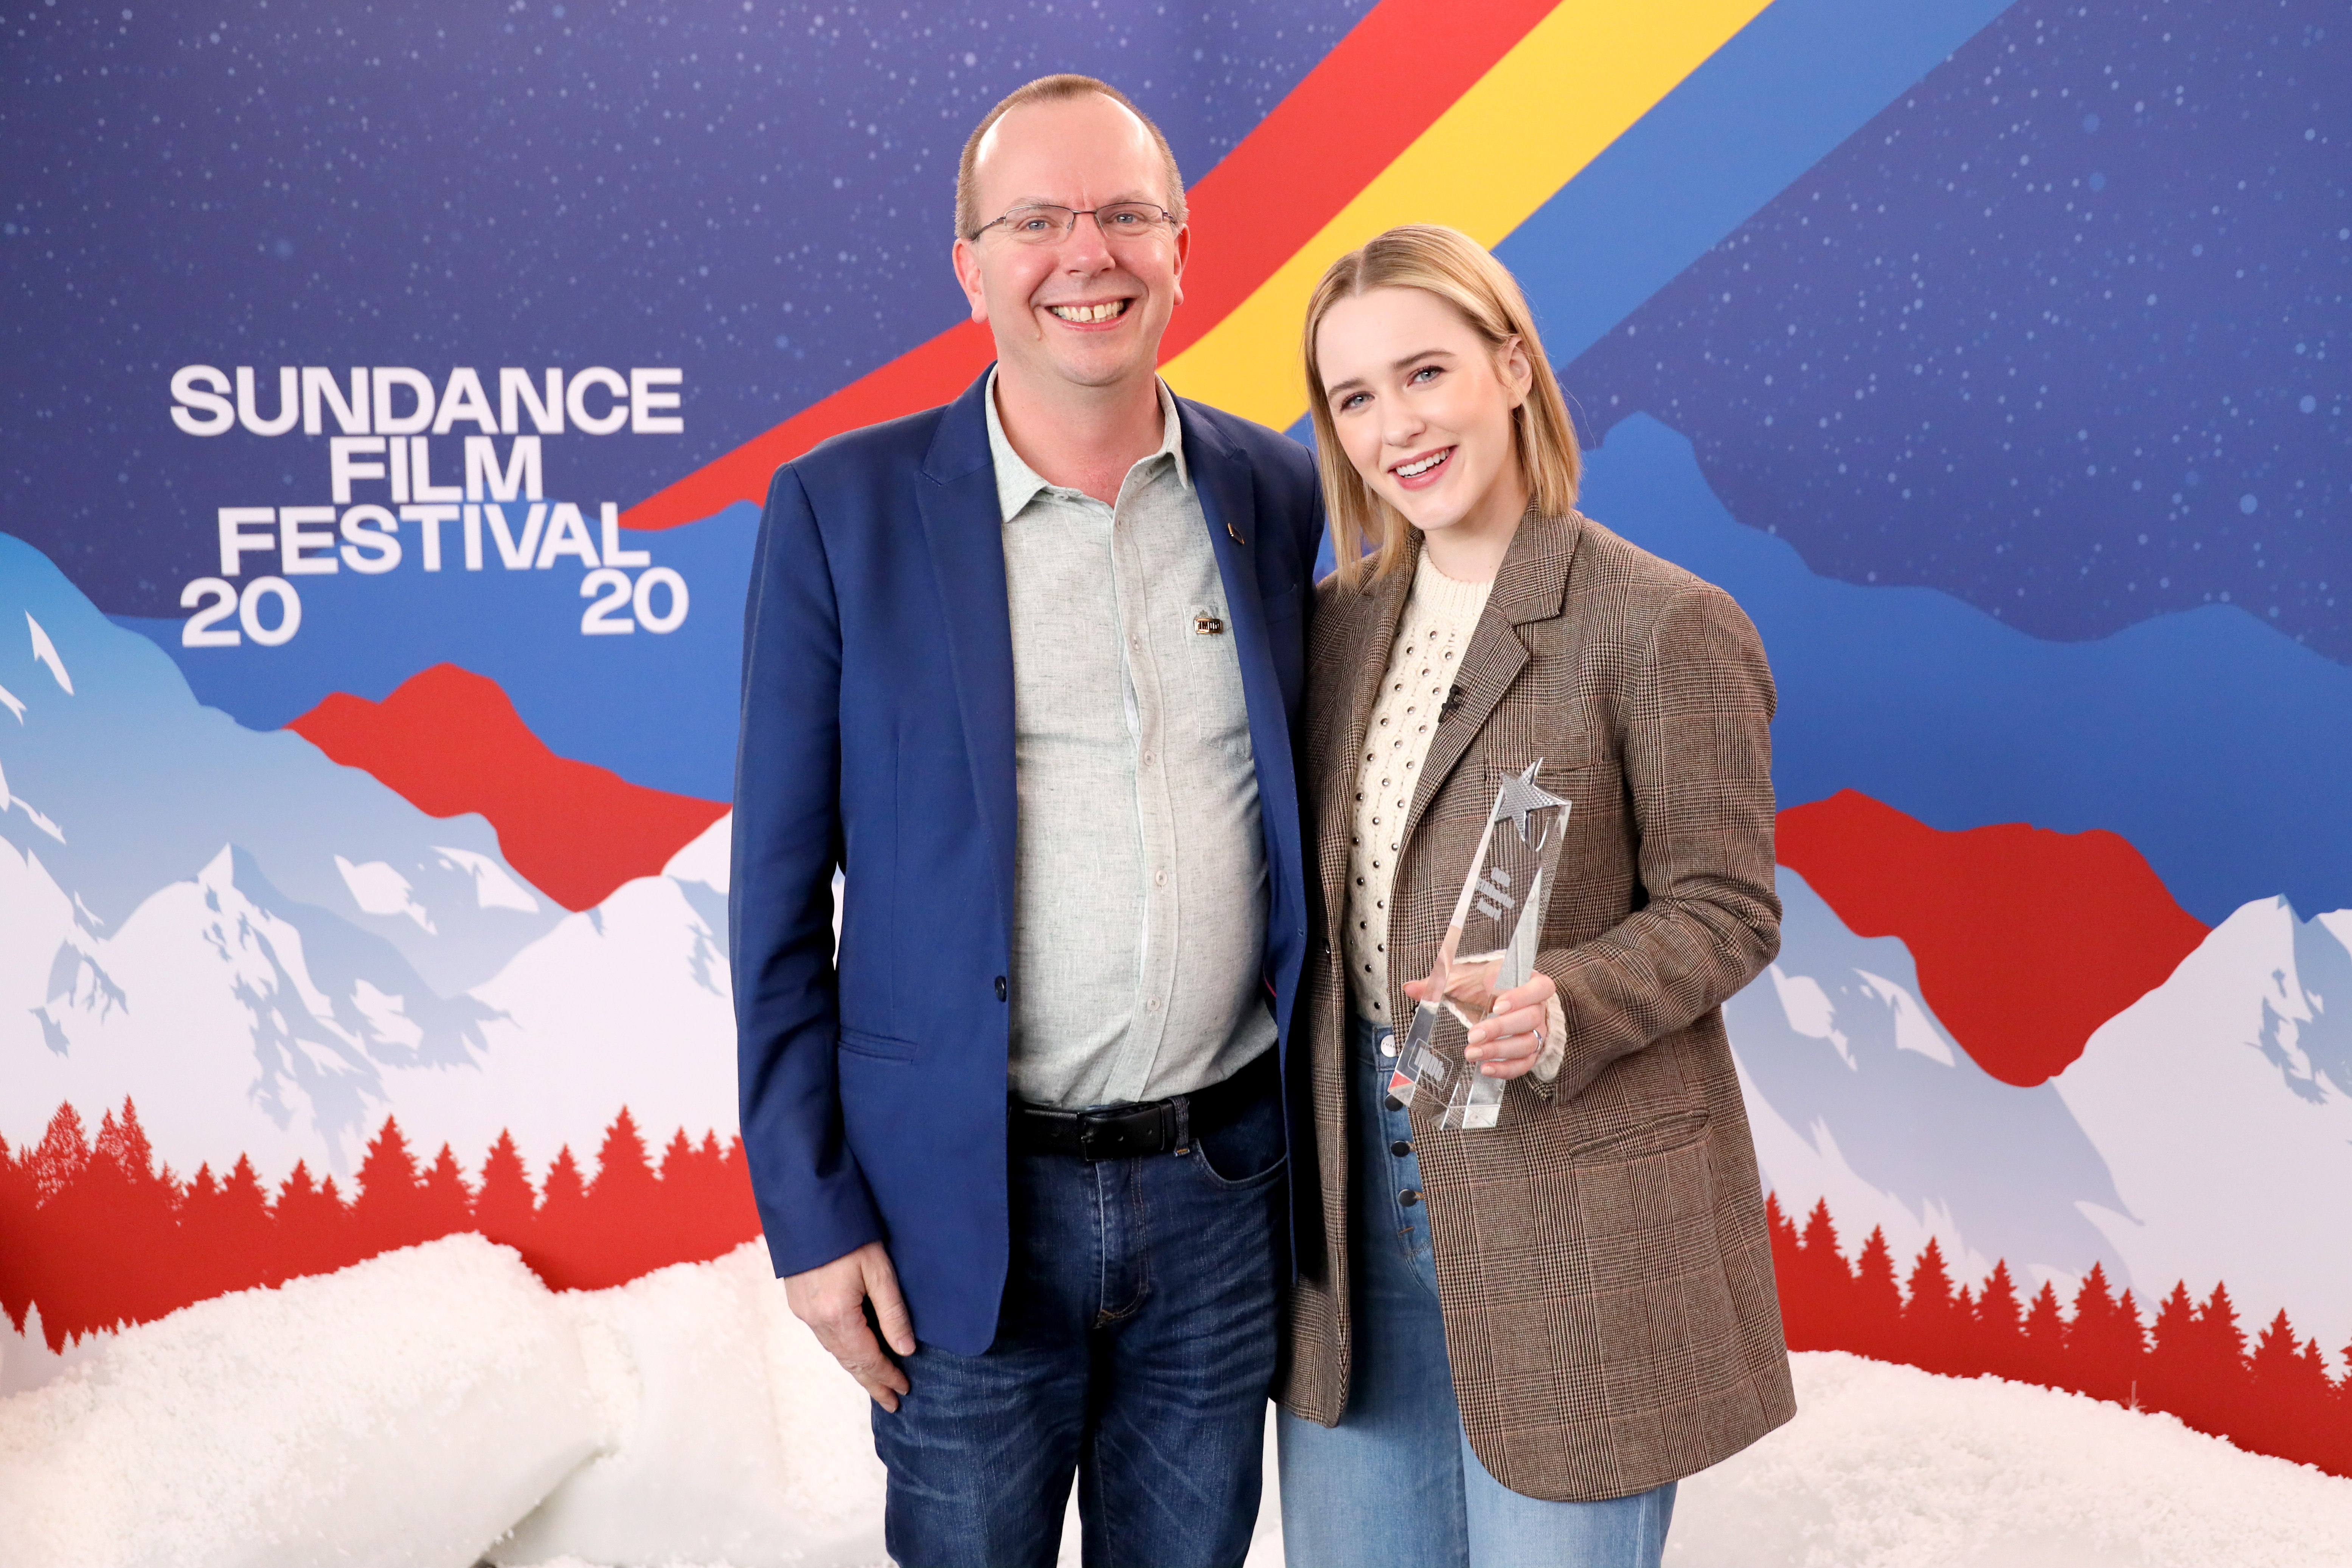 Col Needham and Rachel Brosnahan at an event for The IMDb Studio at Acura Festival Village (2020)